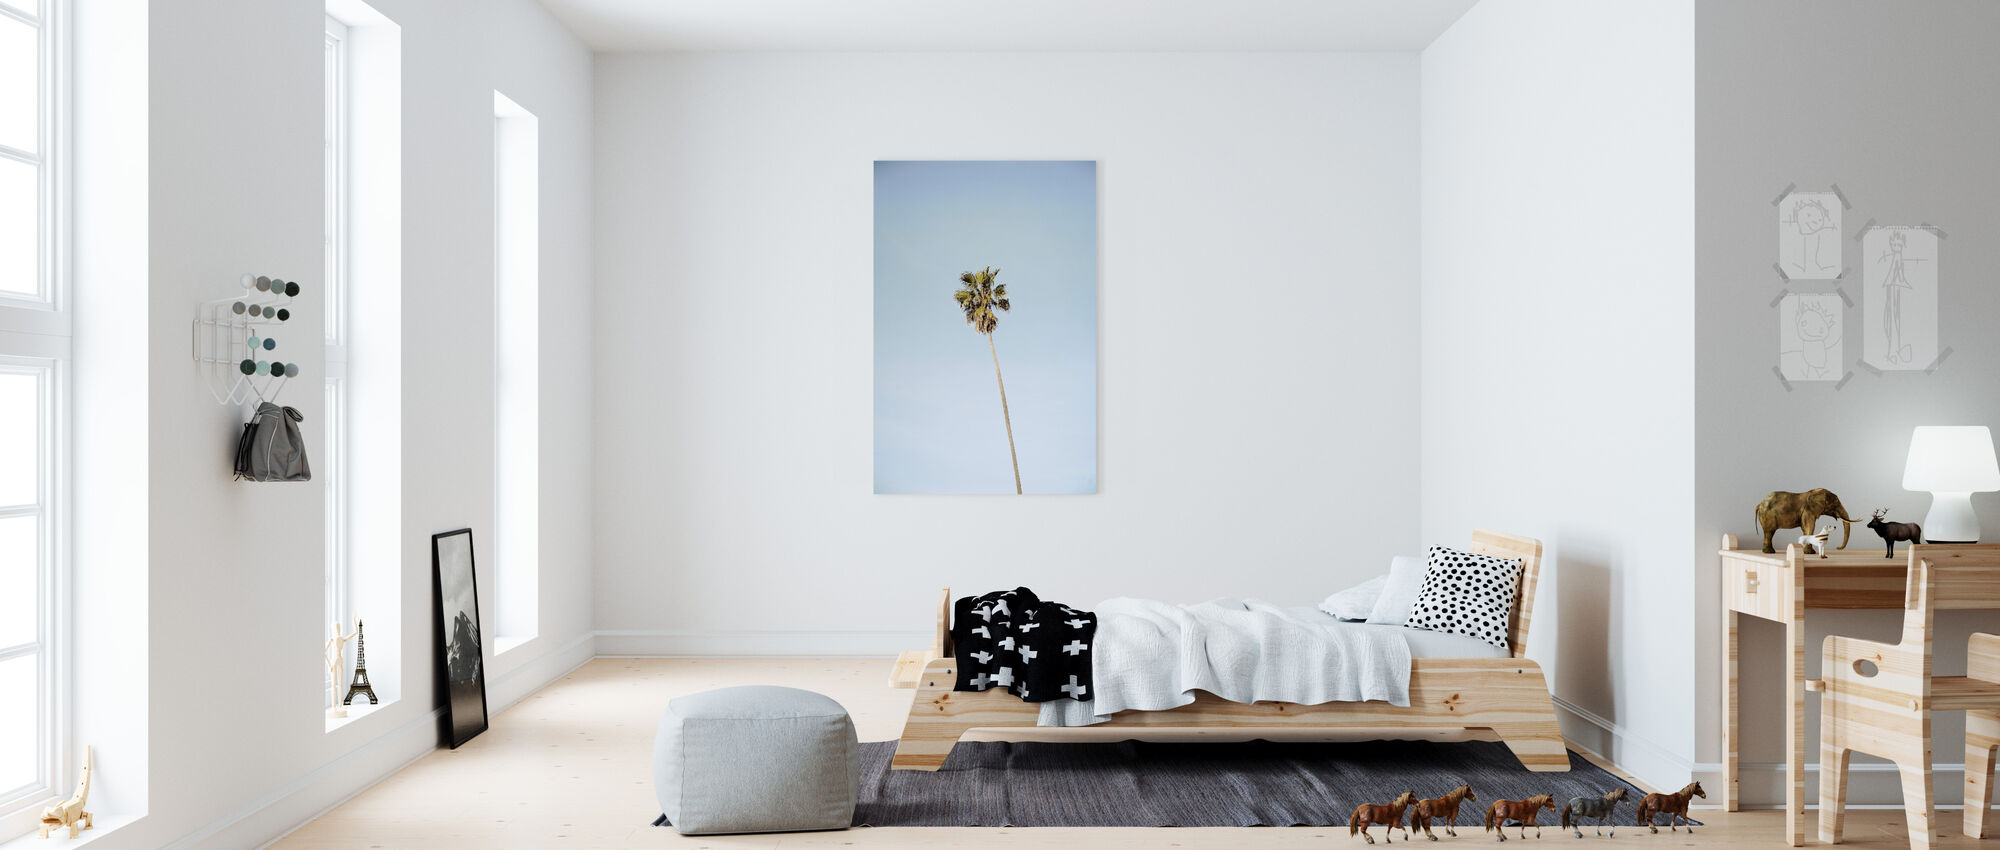 Endless Summer III - Canvas print - Kids Room